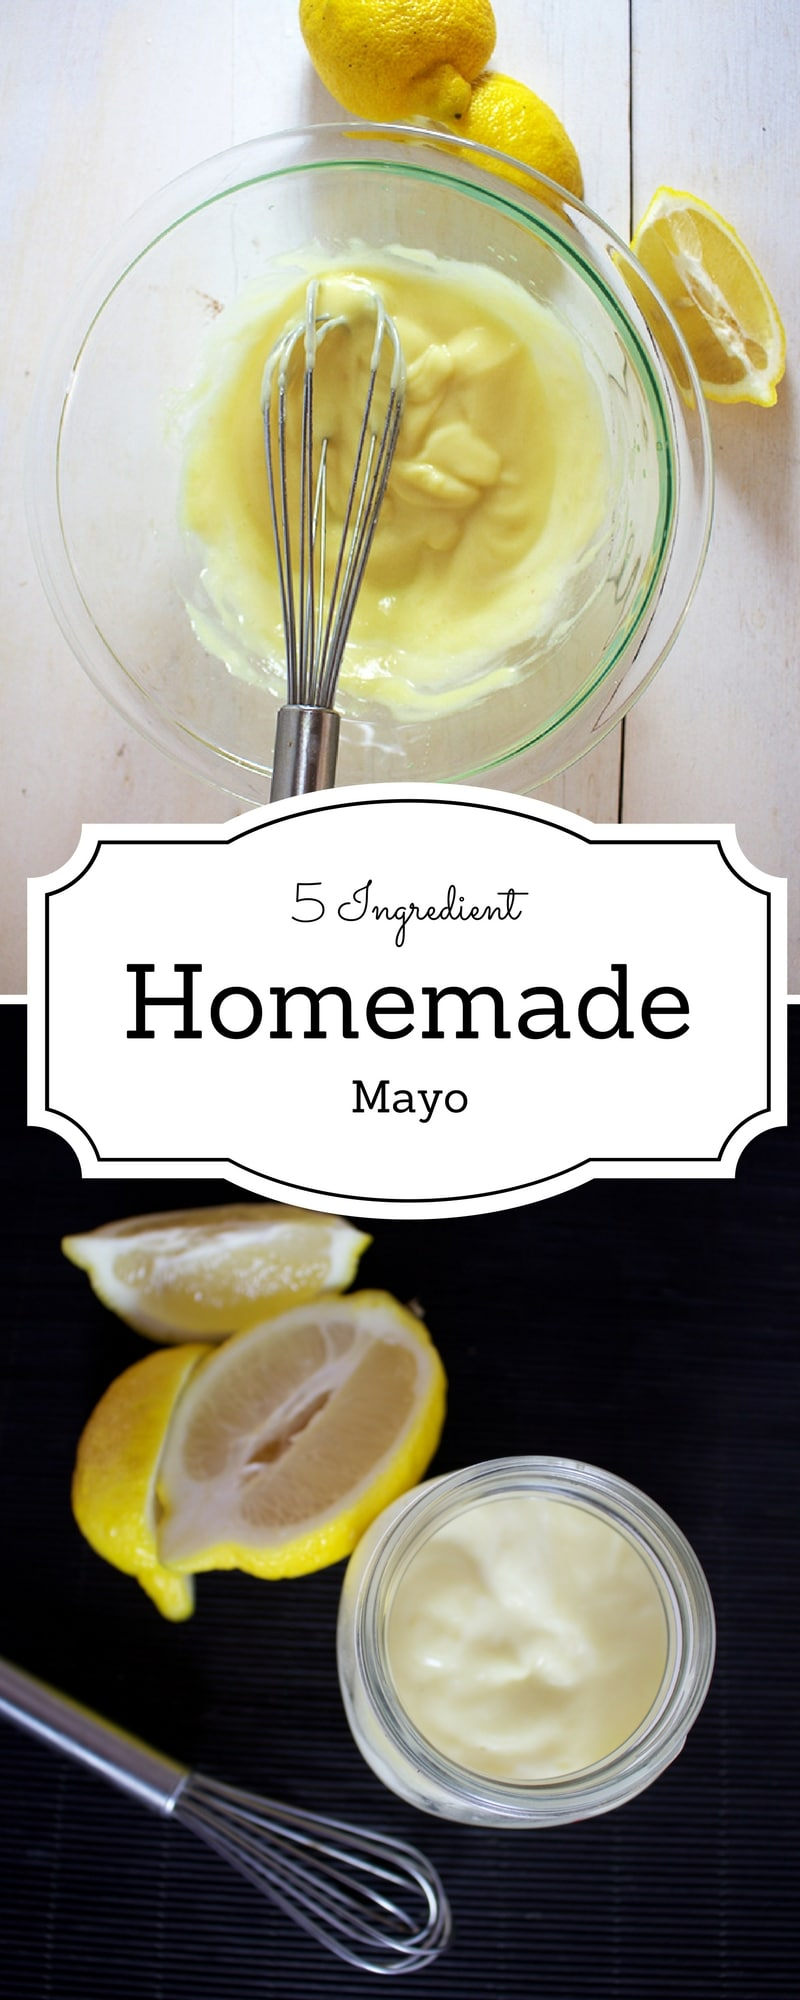 5 Ingredient Homemade Mayonnaise